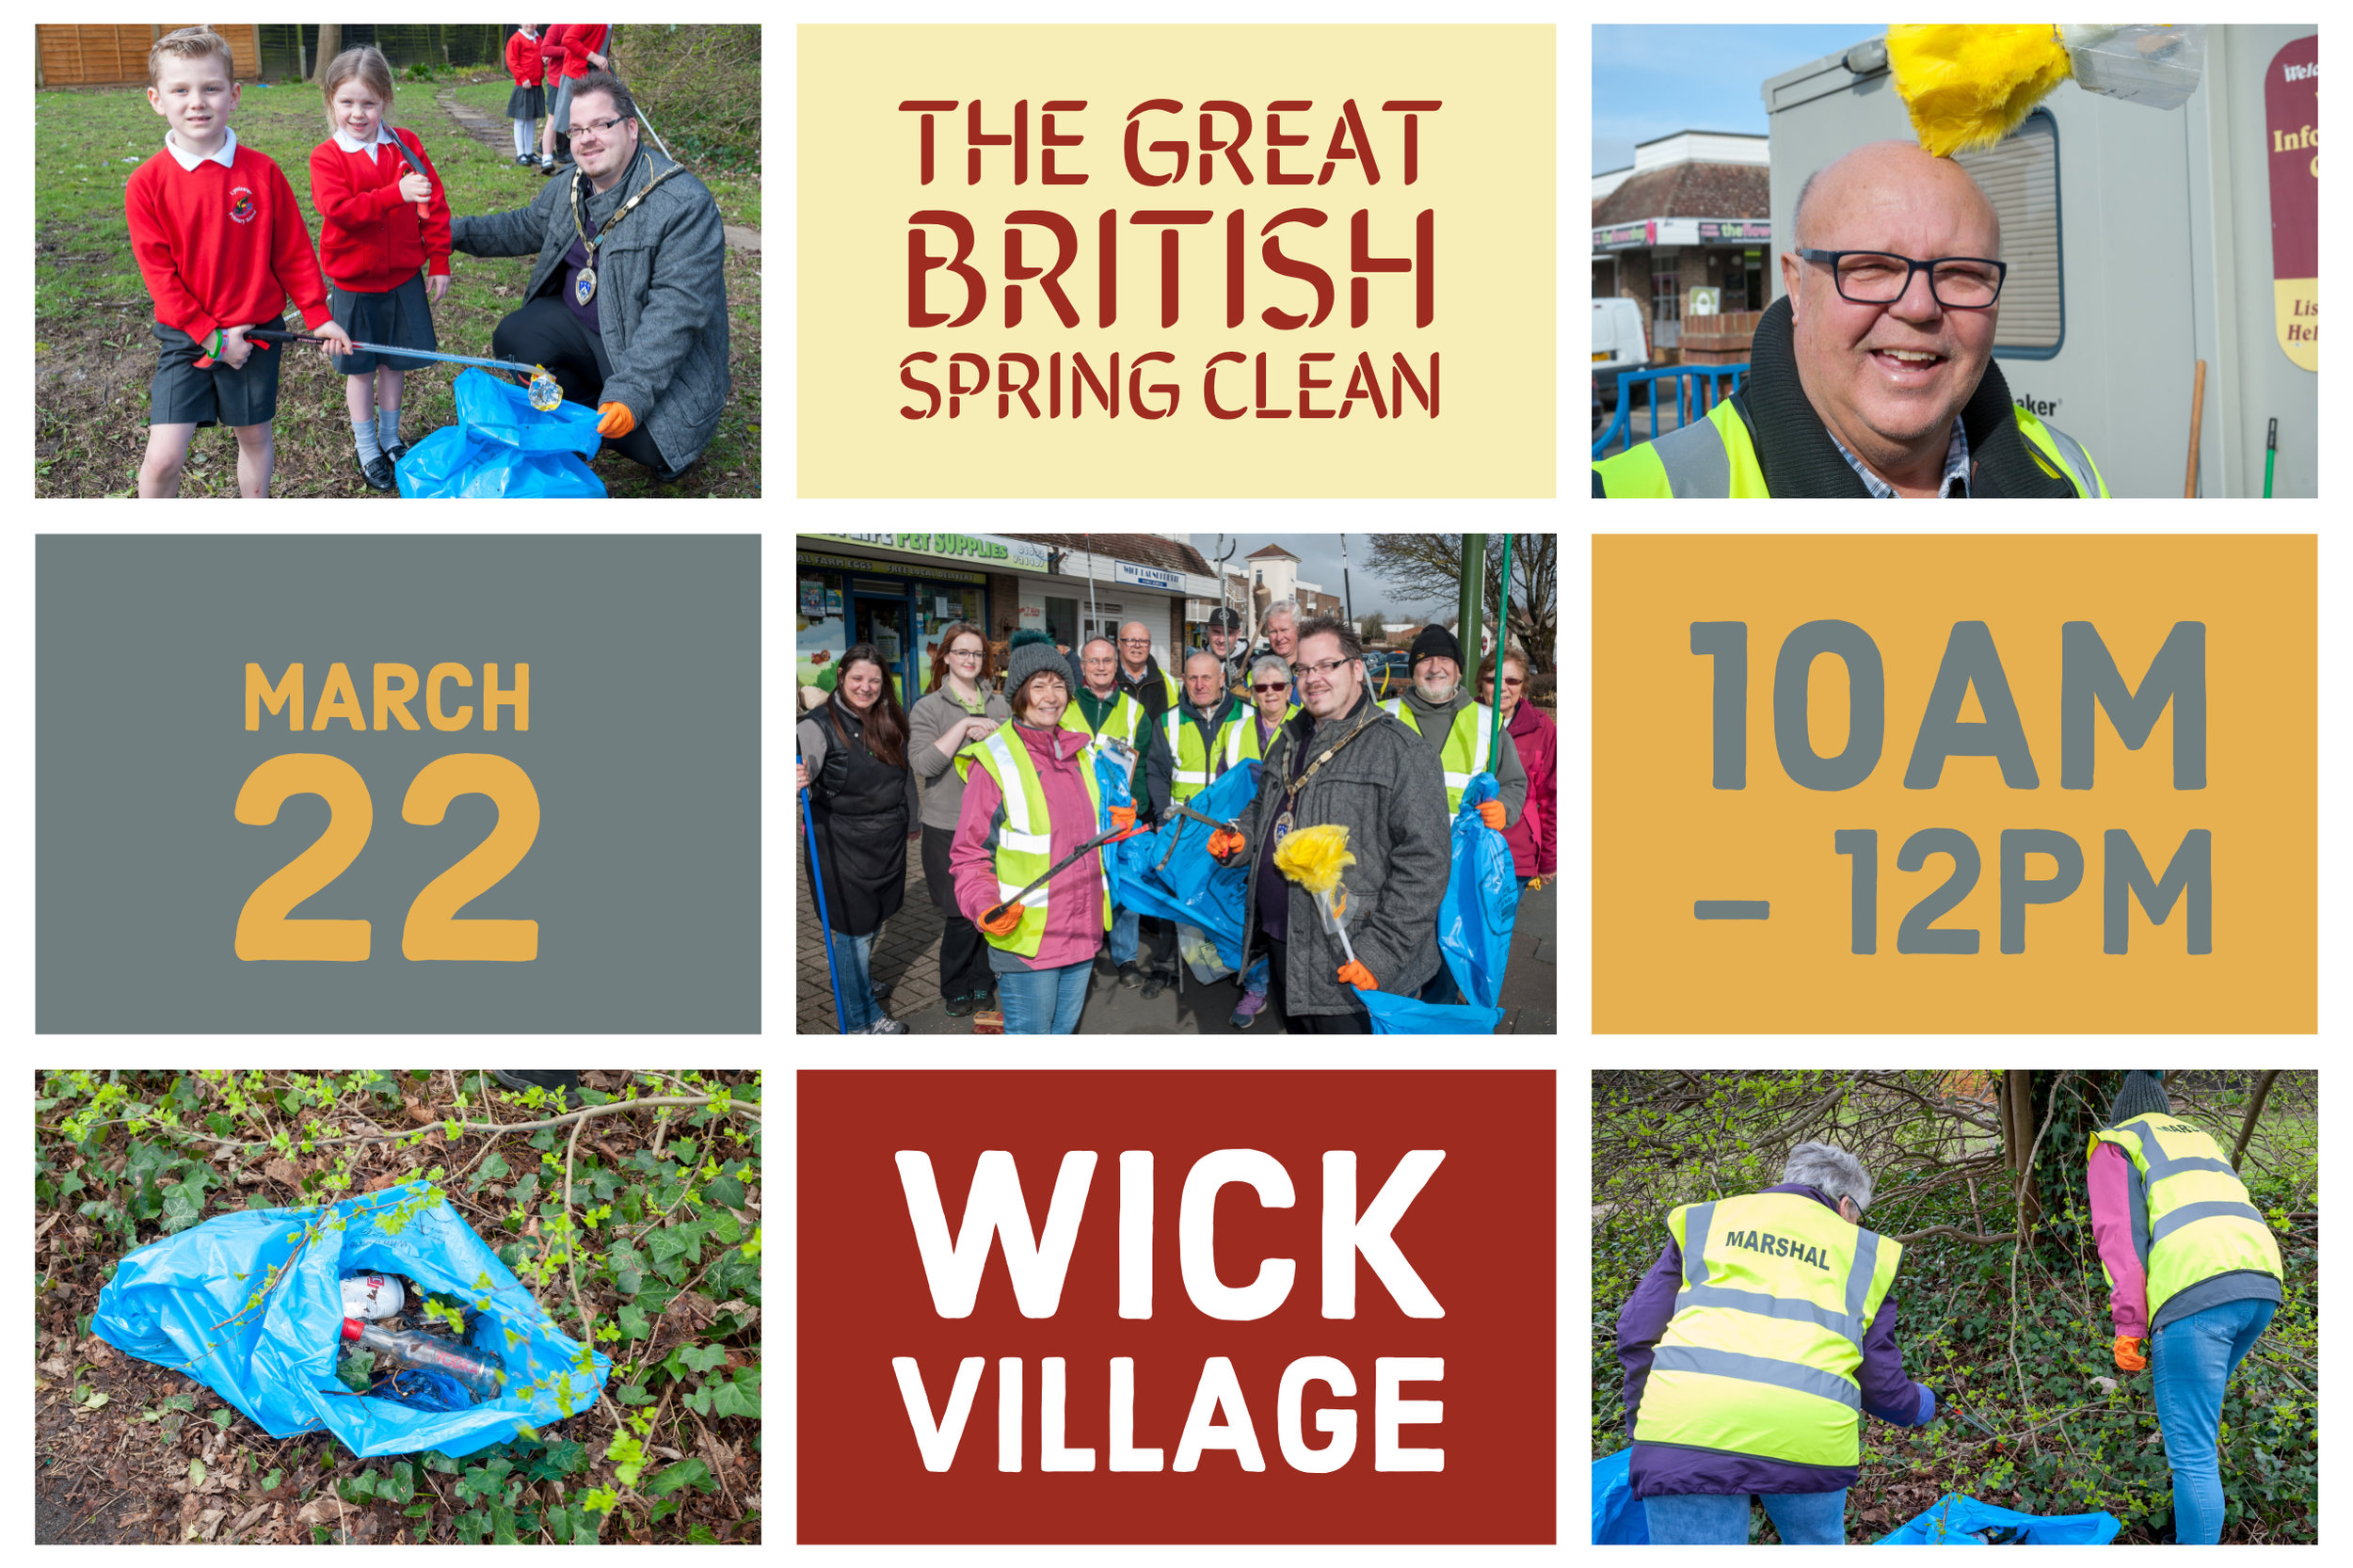 The Great British Spring Clean Of Wick Village 2019.